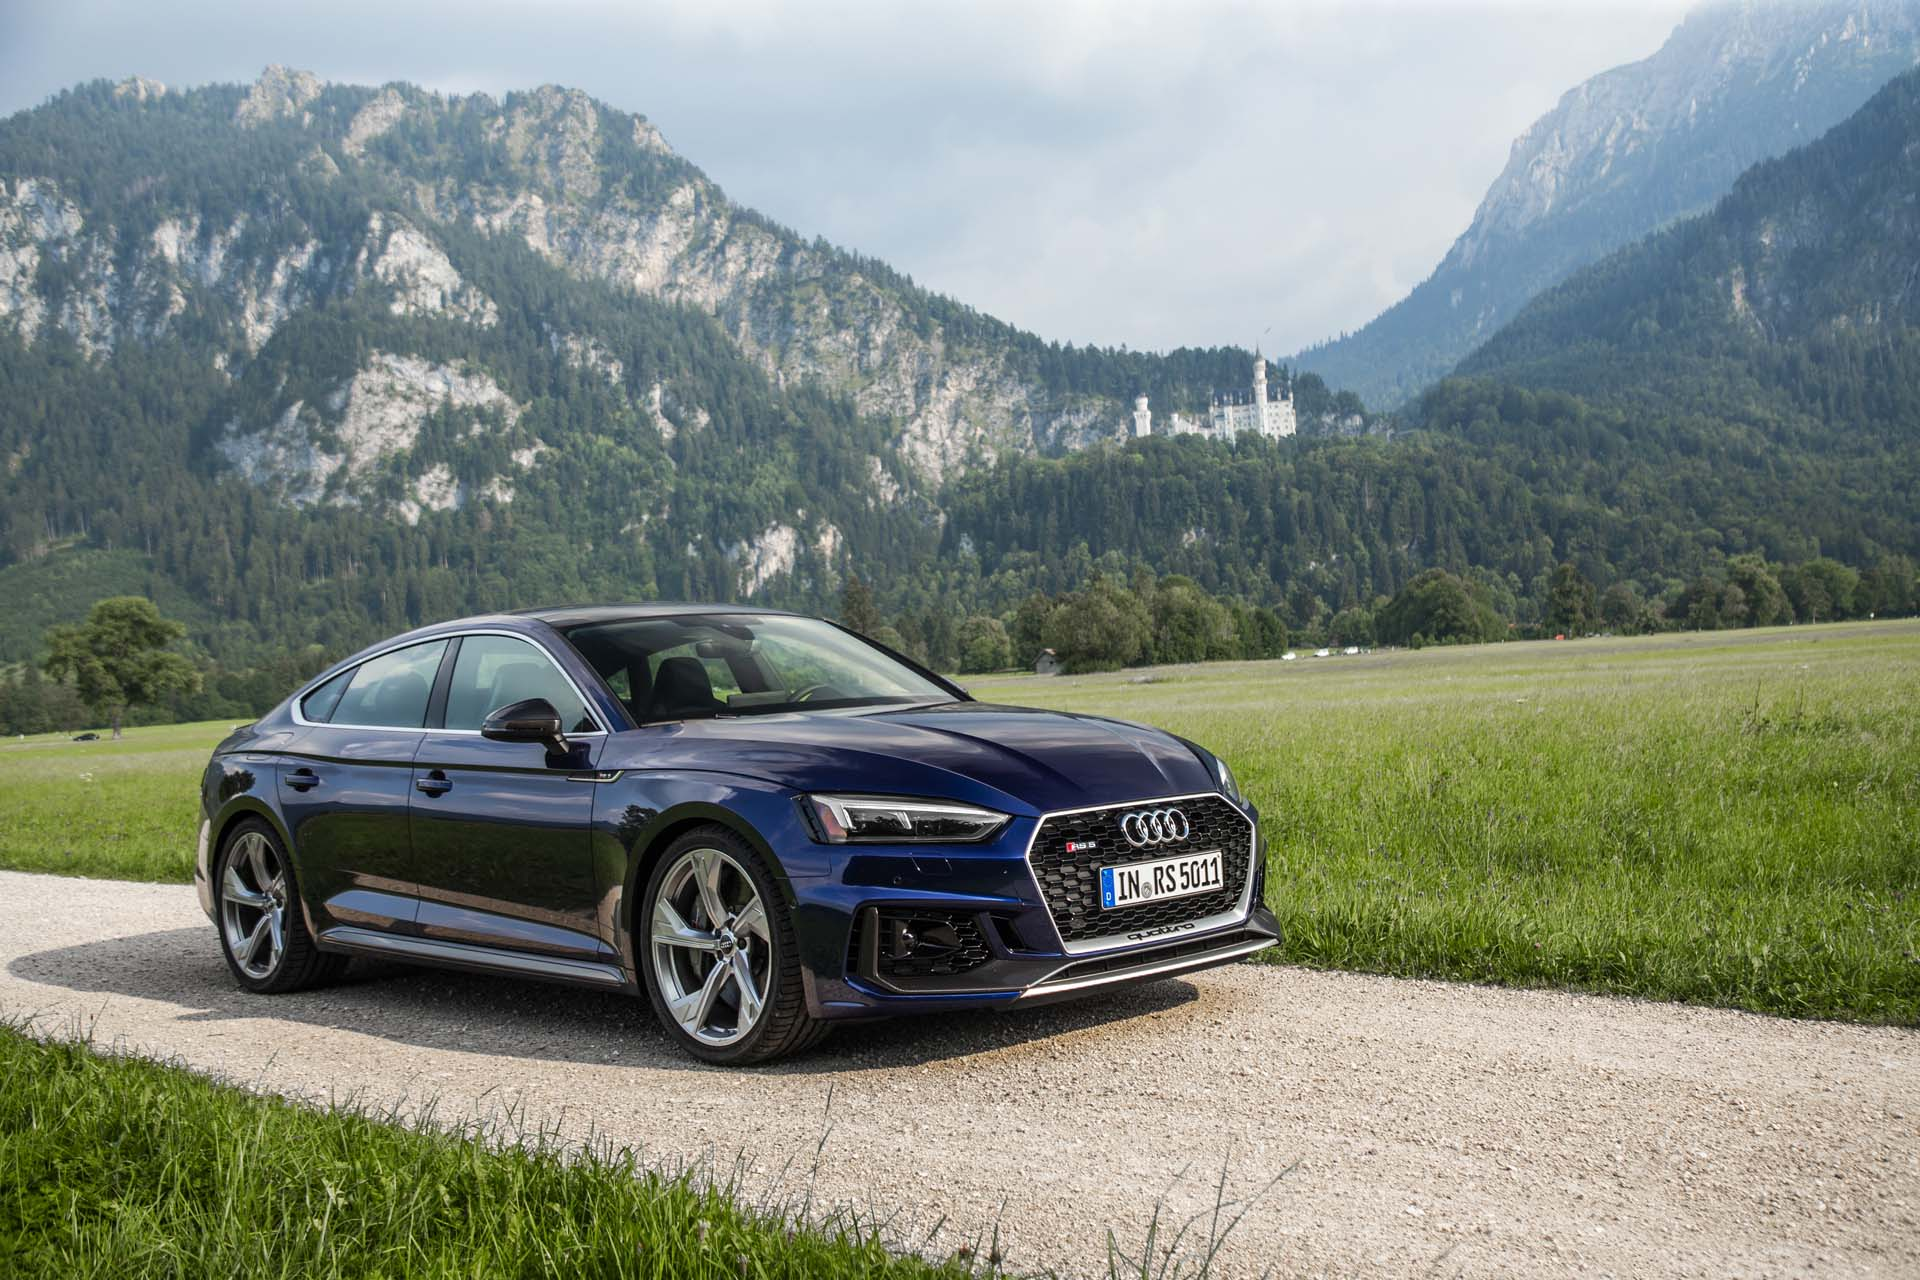 2019 Audi RS 5 Sportback First Drive Review: Faith At